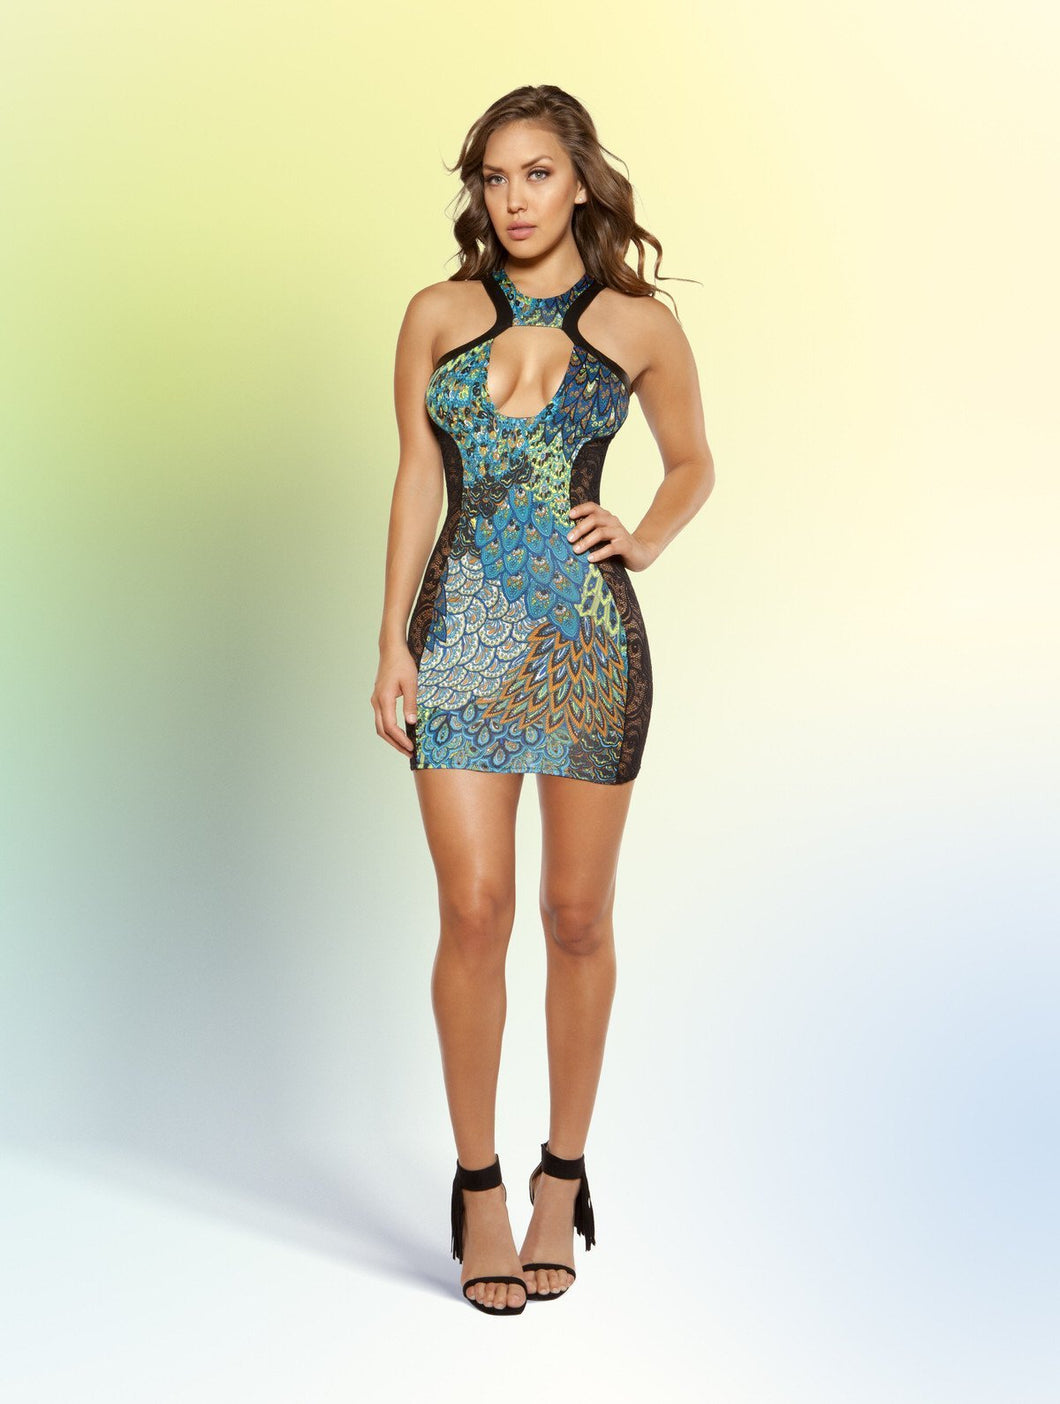 3383 - Cutout Printed Dress with Lace Sides, Women's Fashion - Women's Clothing - Mini Dresses - Smash Marketing